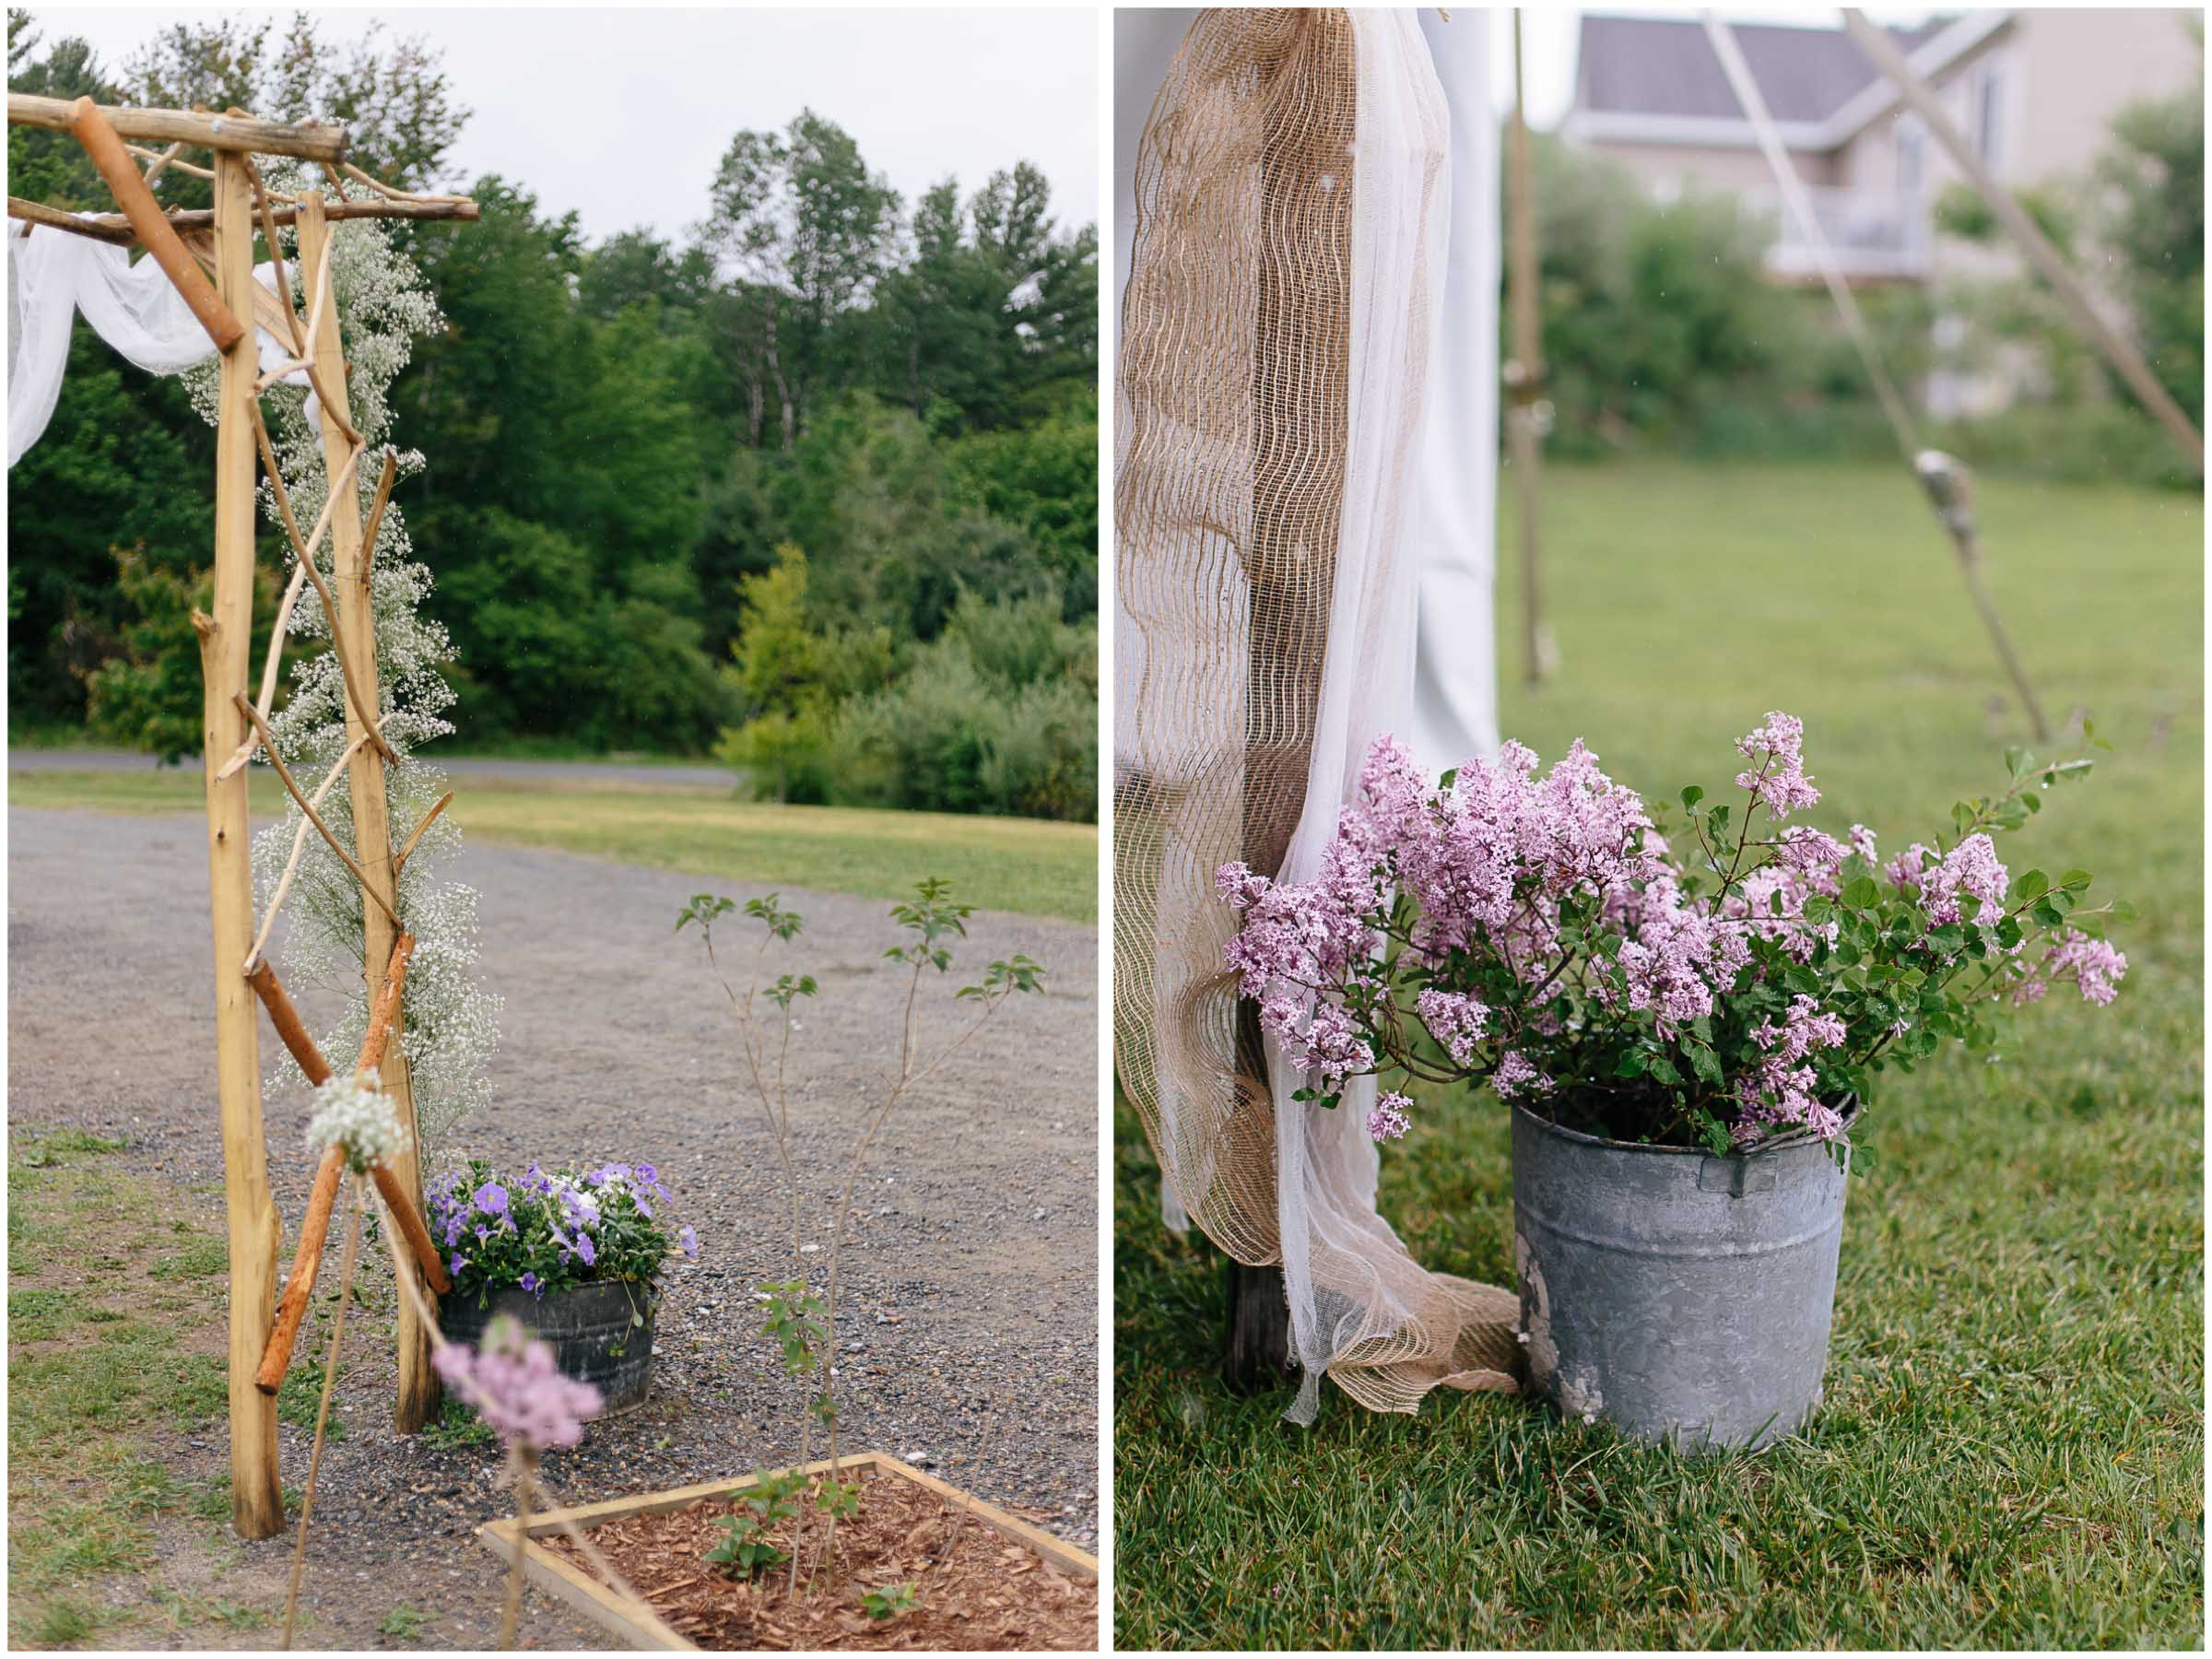 Charming Massachusetts countryside journalistic wedding by Ashleigh Laureen Photography